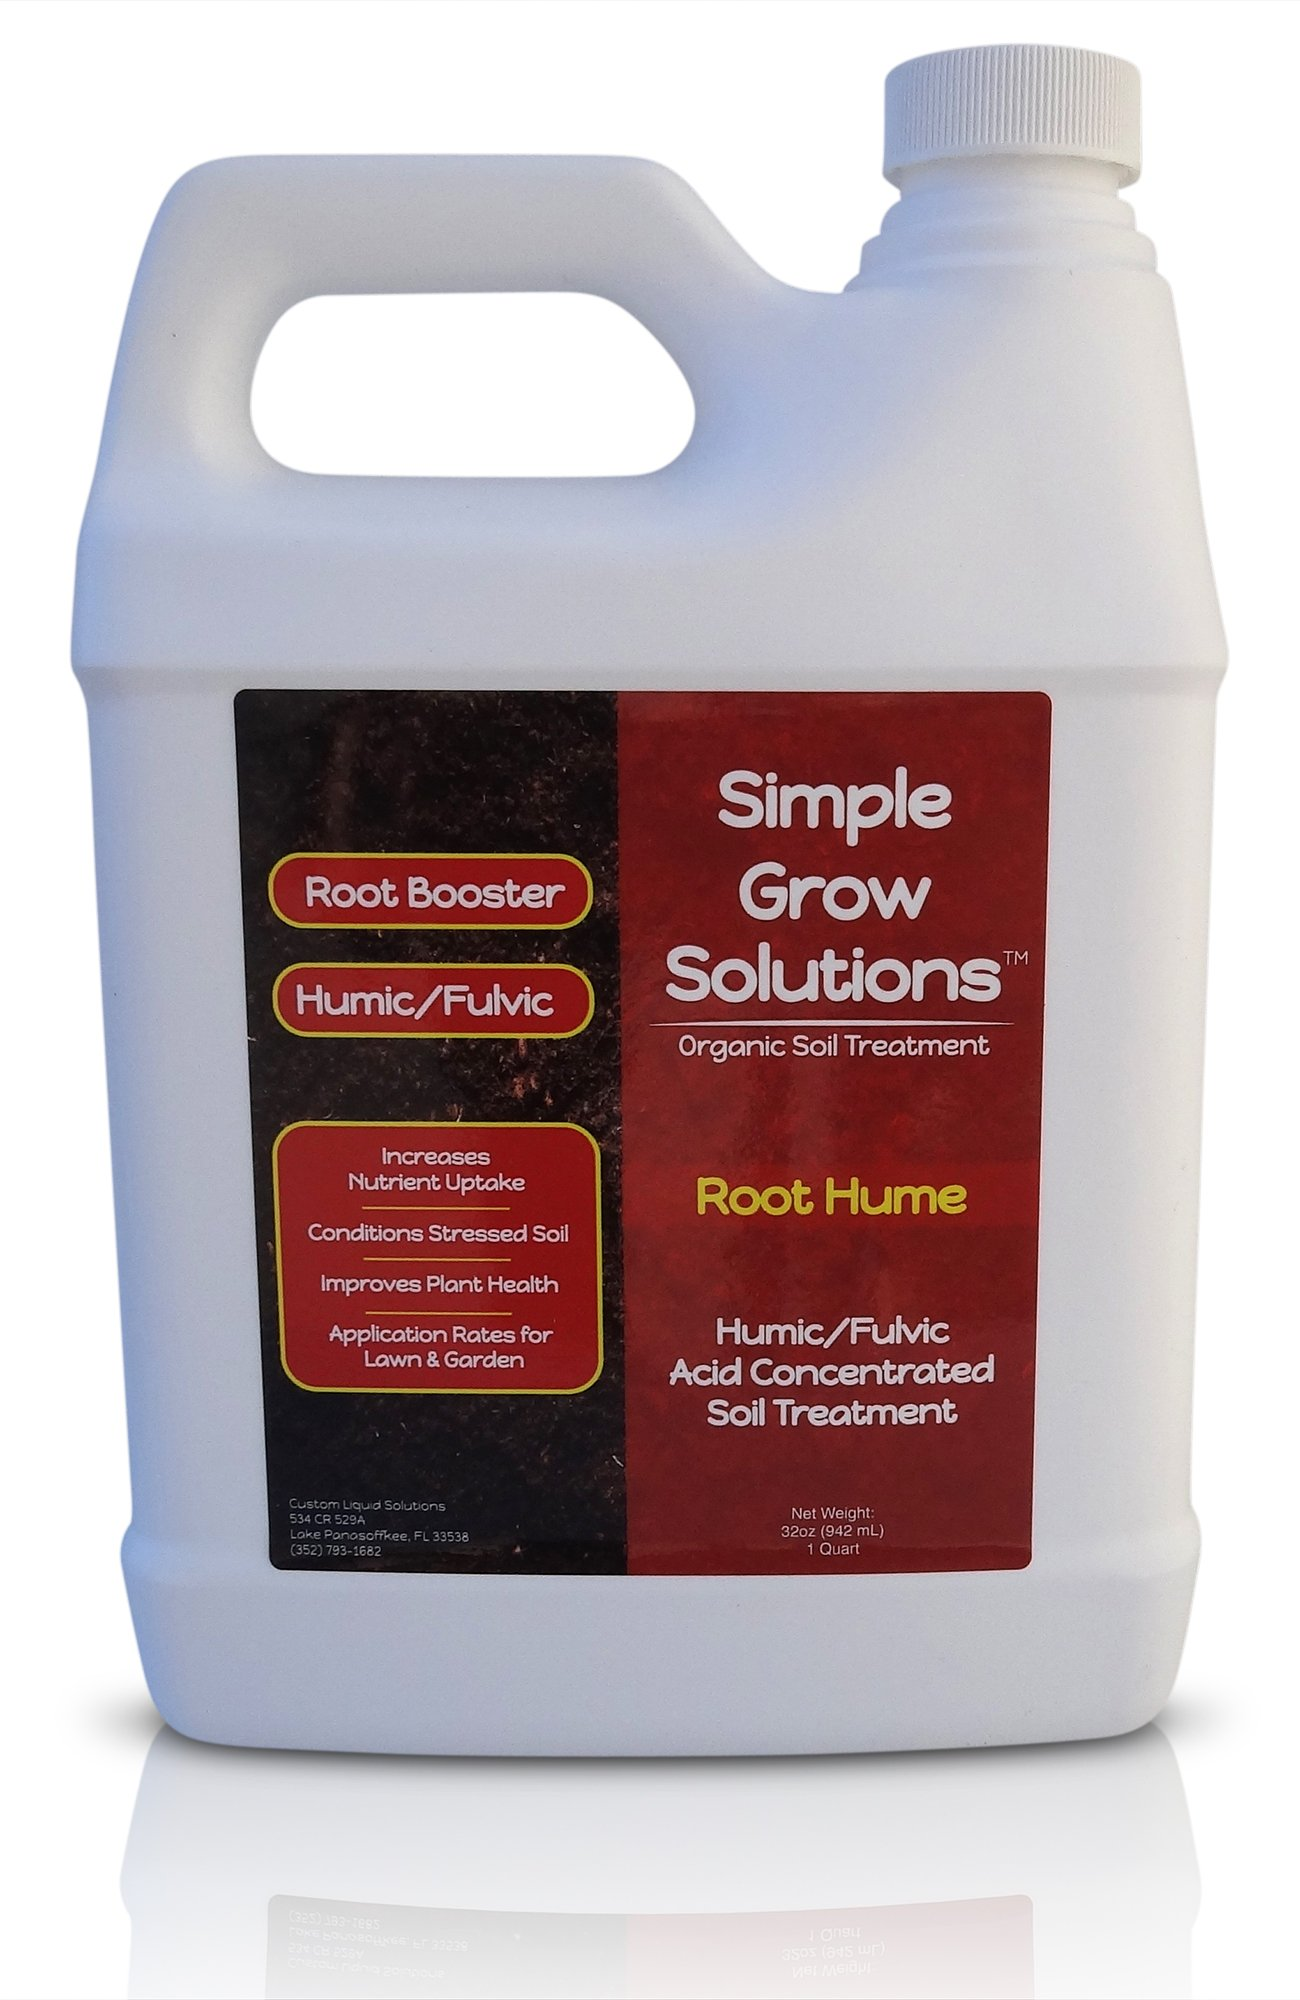 Raw Organic Soil Conditioner- Root Hume- Simple Grow Solutions- Natural Plant & Lawn Treatment- Nutrient Food Enhancer- Concentrated Liquid Humic/ Fulvic- Grass, Tomatoes, Citrus, Flowers, Vegetables by Simple Lawn Solutions